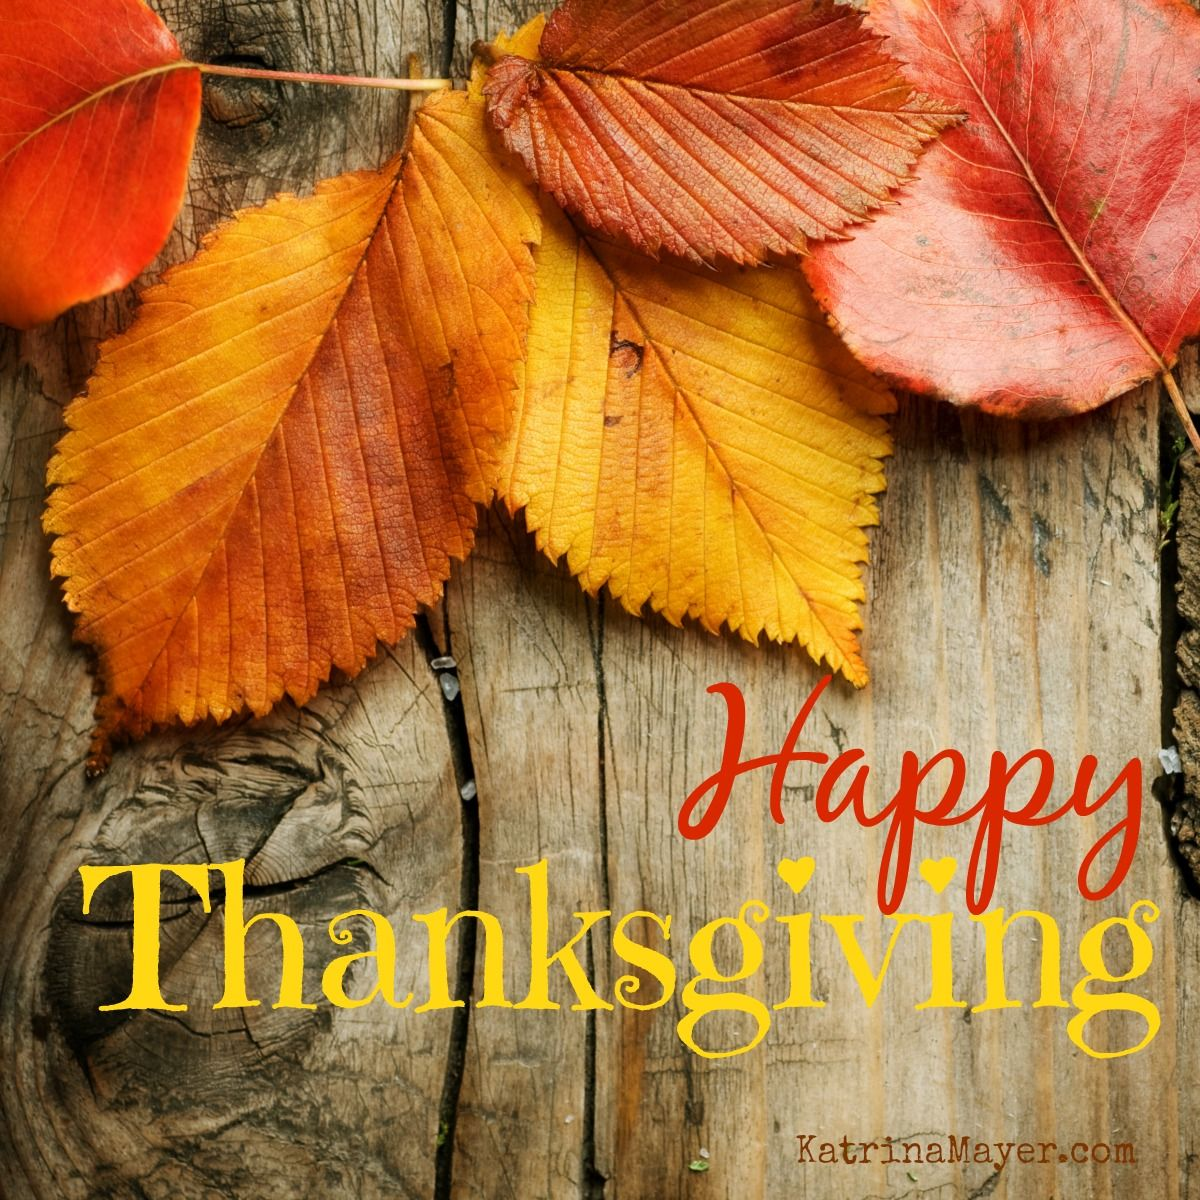 Deep Thanksgiving Quotes: Happy Thanksgiving! We Wish All Our Friends, Contributors